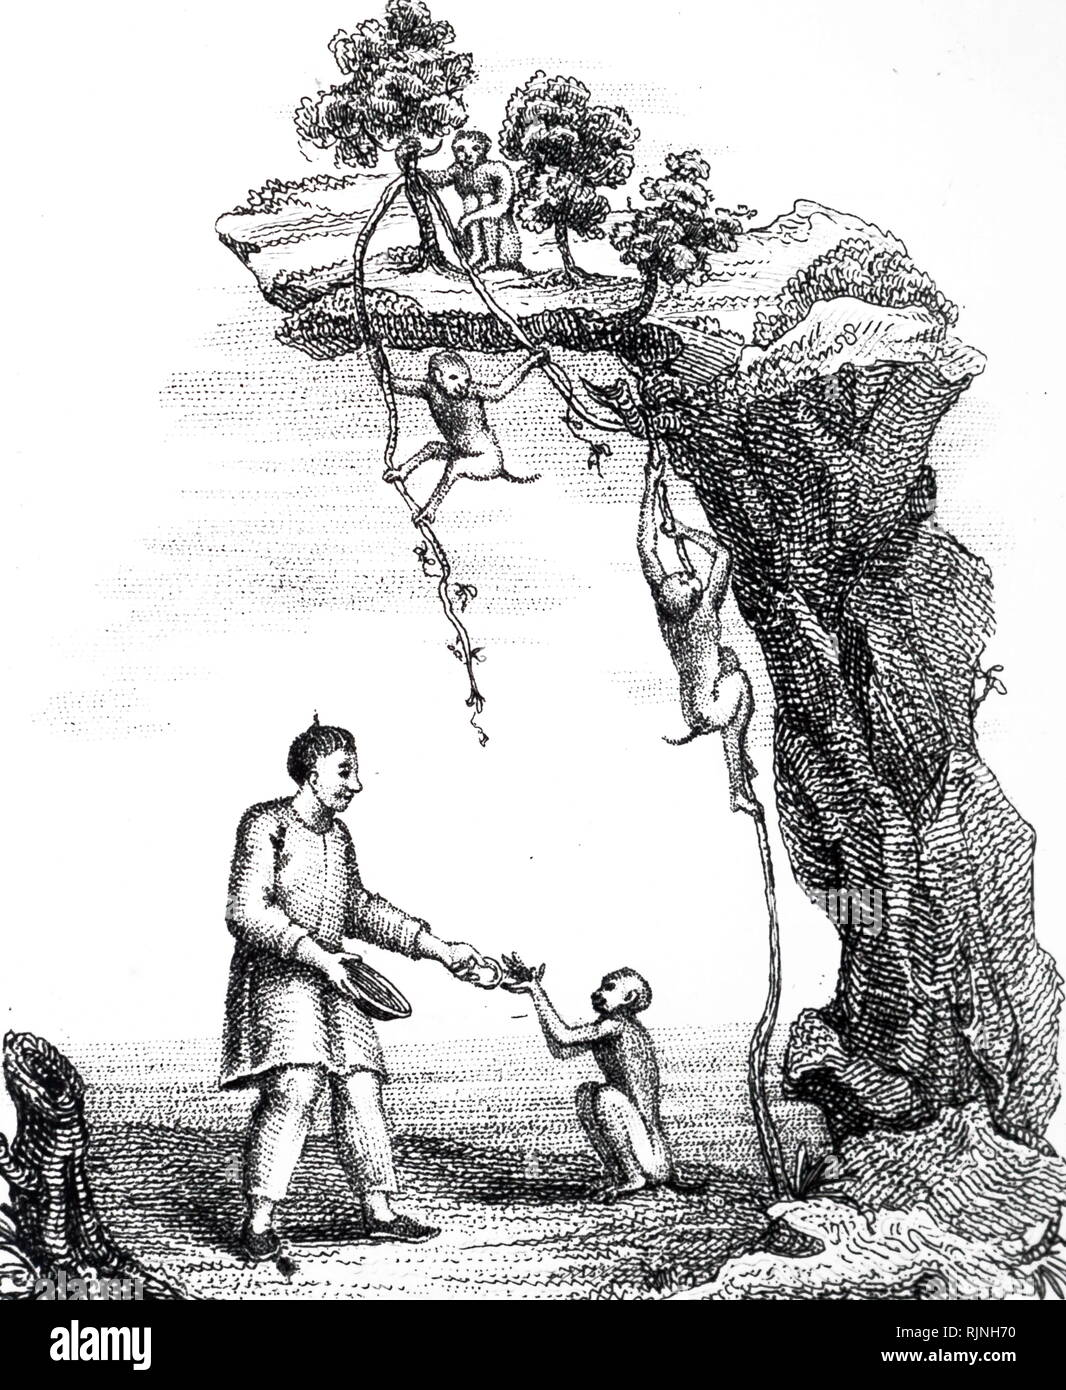 An engraving depicting trained monkeys being used to gather tea growing in inaccessible places. Dated 19th century - Stock Image